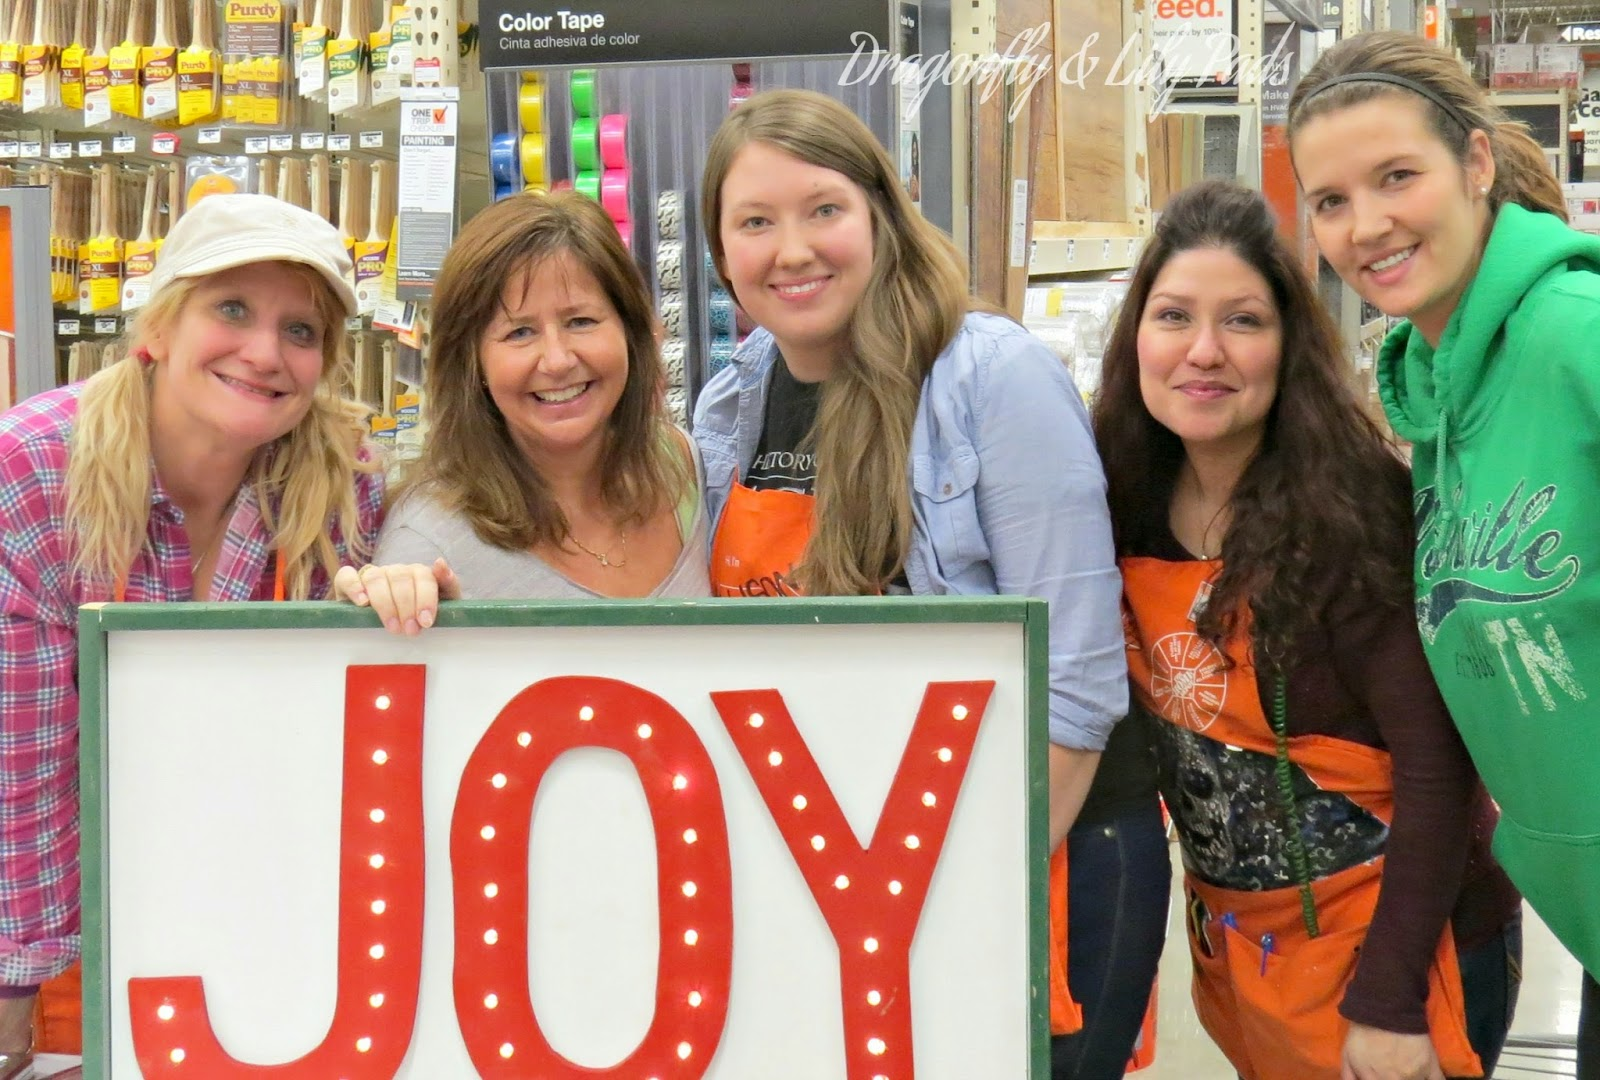 Her It Yourself Workshop at Home Depot in Countryside, IL Instructors and New Friends